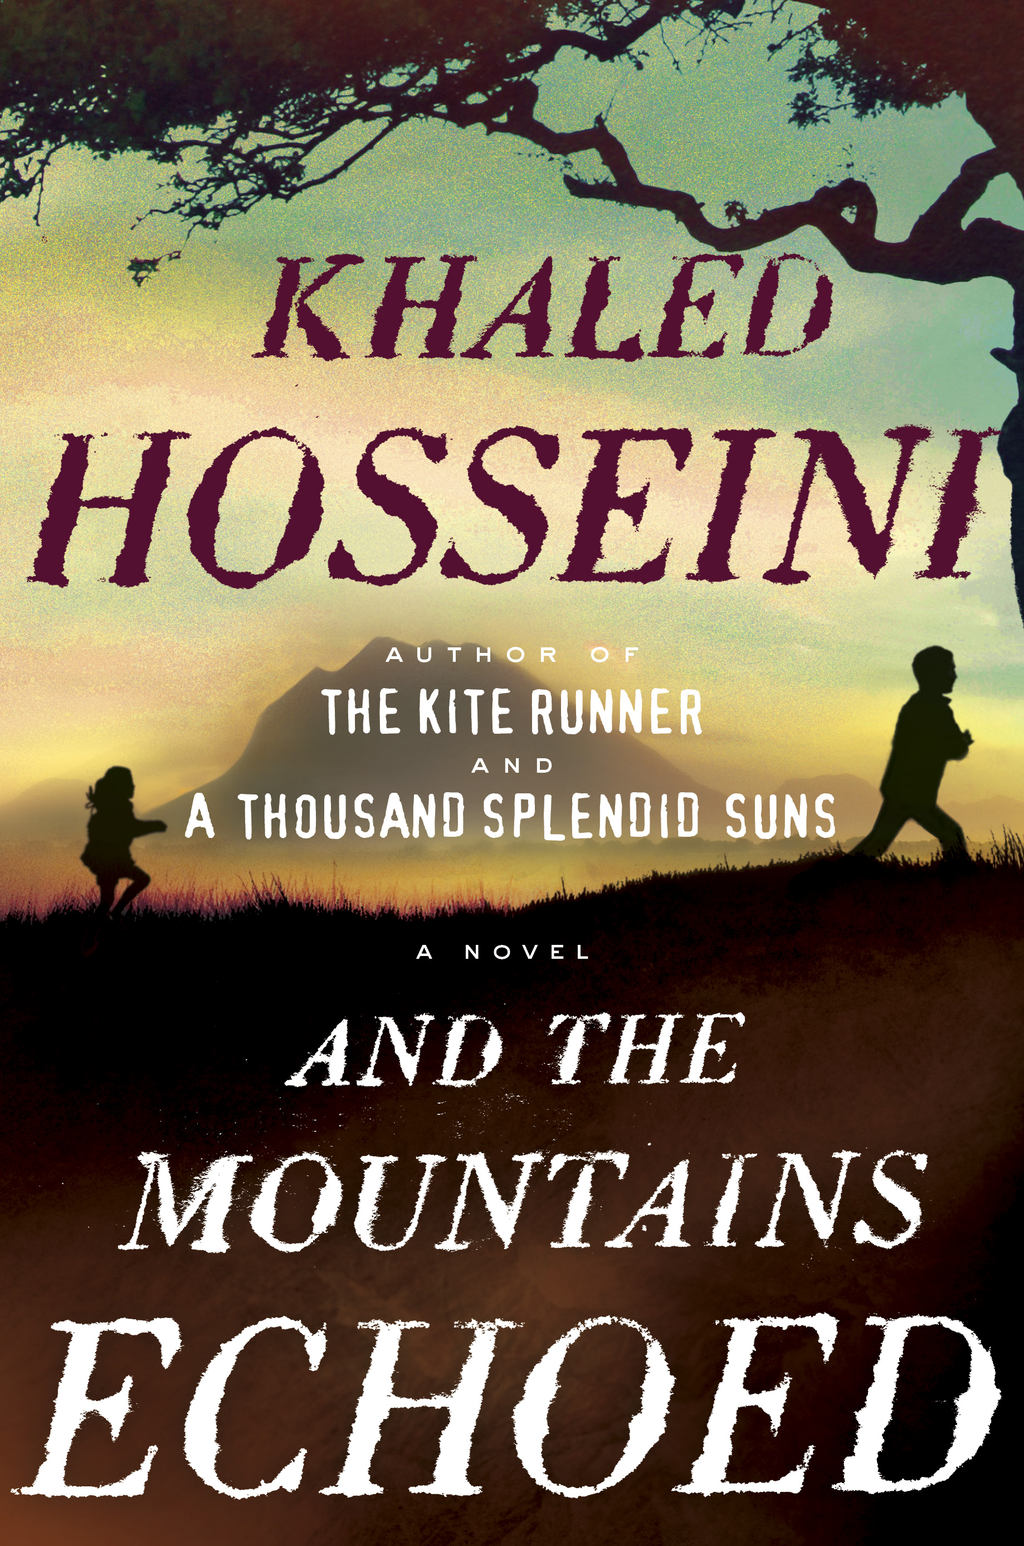 Book Cover: And the Mountains Echoed